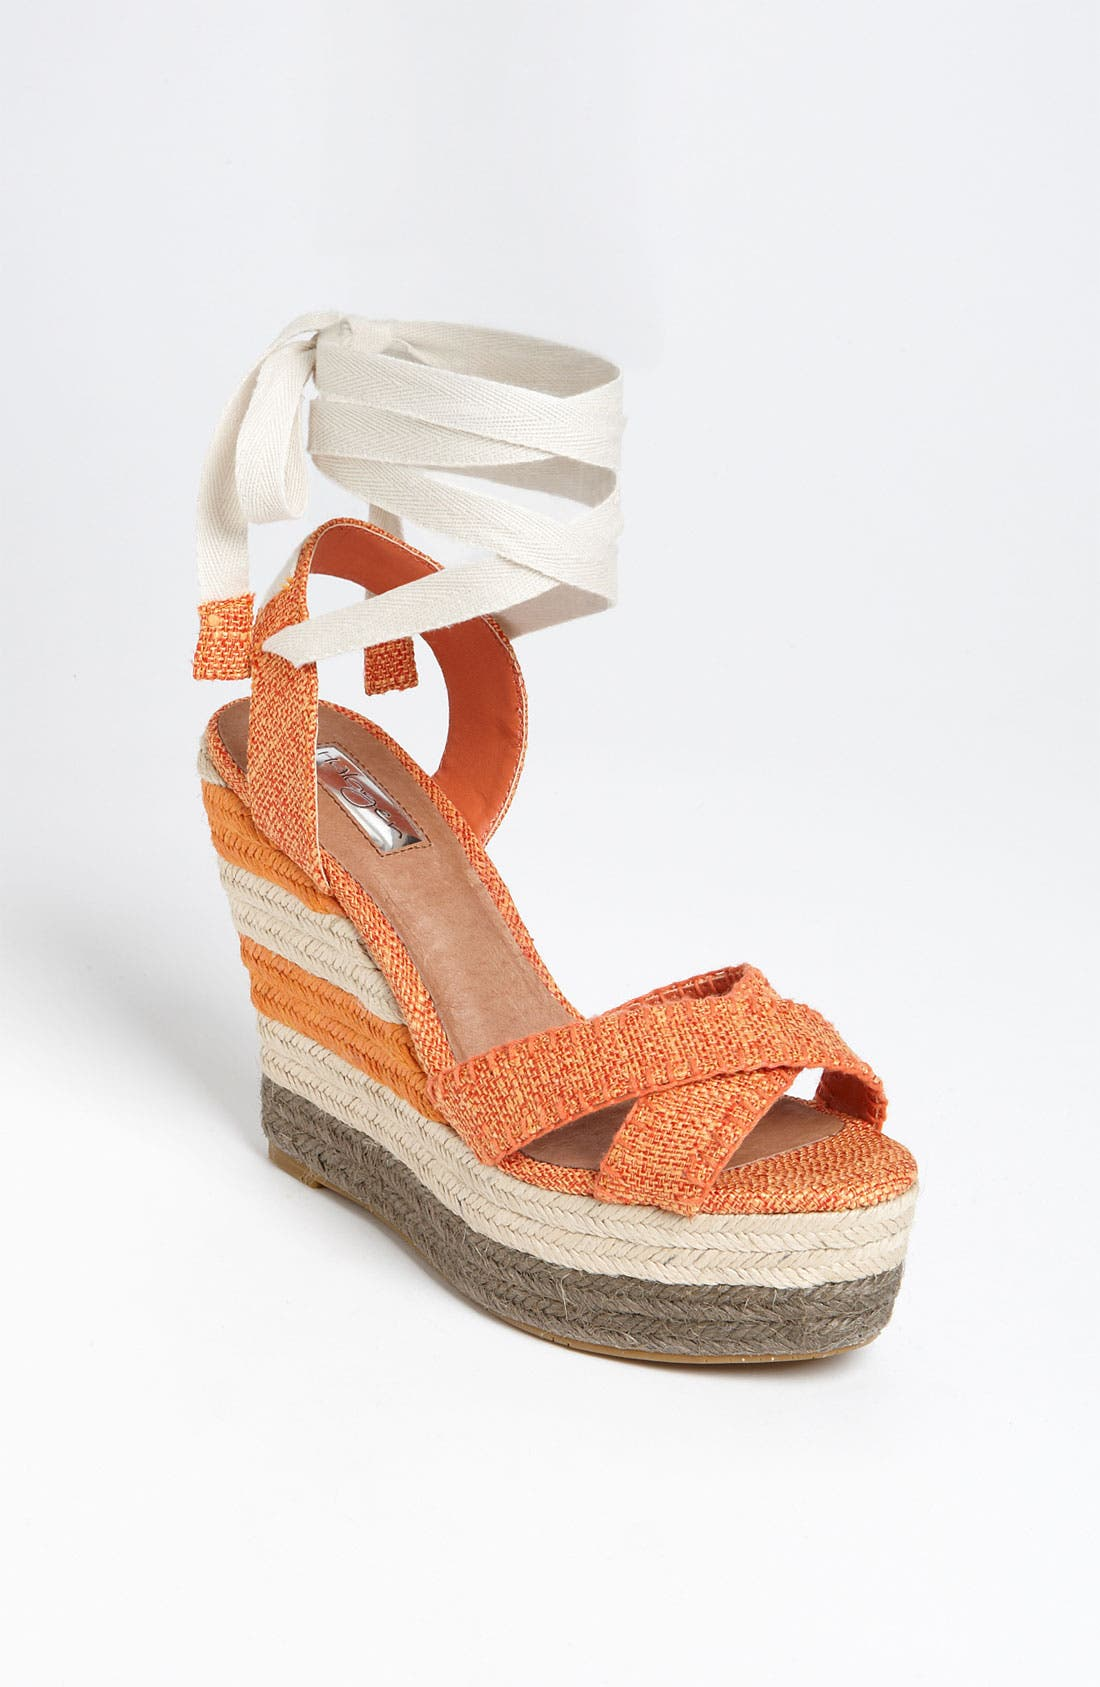 Alternate Image 1 Selected - HALOGEN SUNSET ROPE WEDGE ESPADRILLE